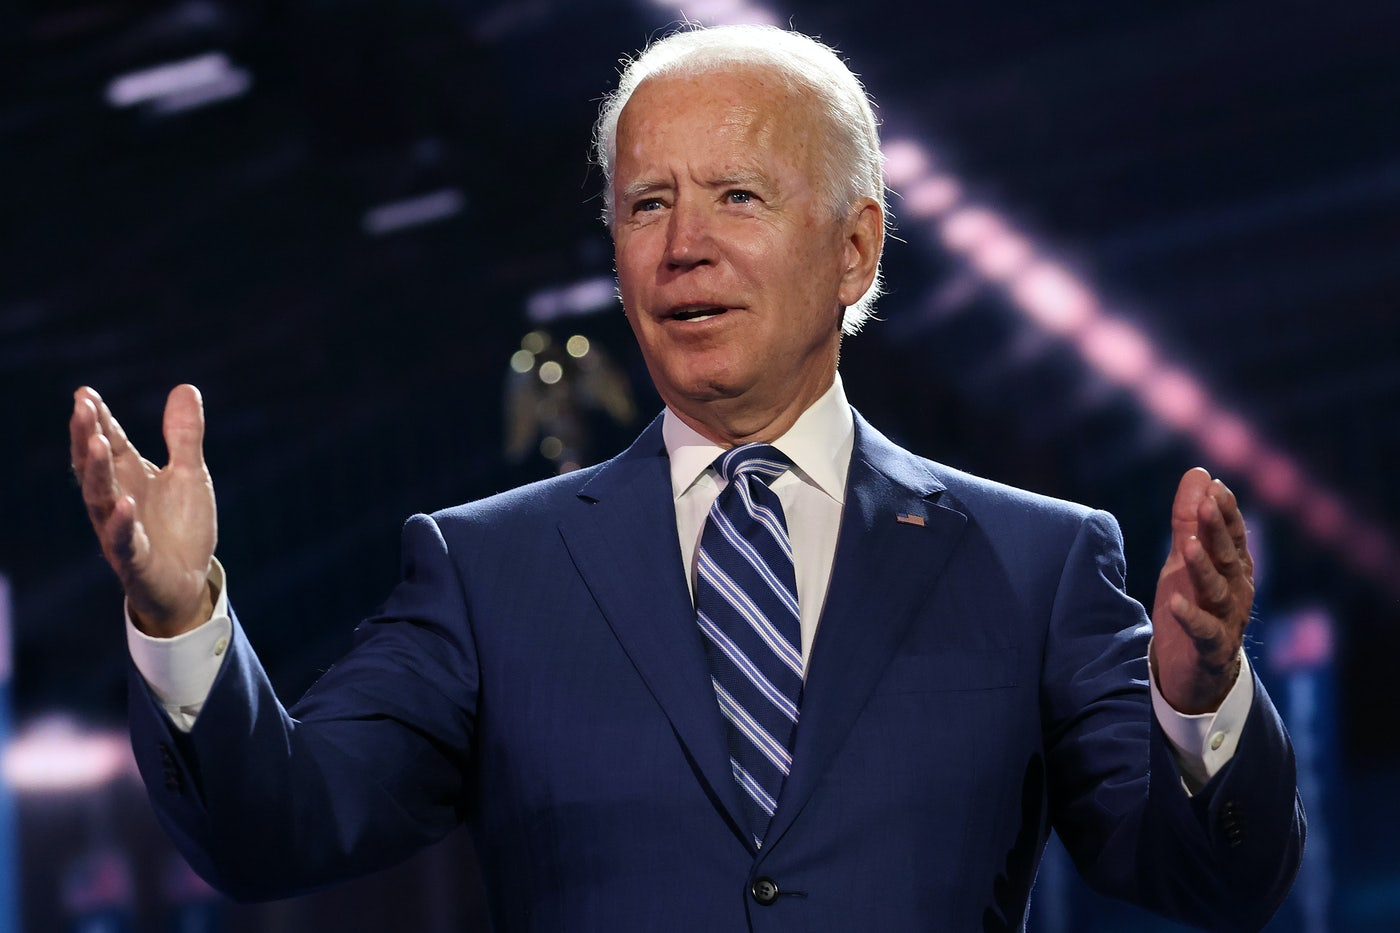 Joe Biden on the third night of the Democratic National Convention